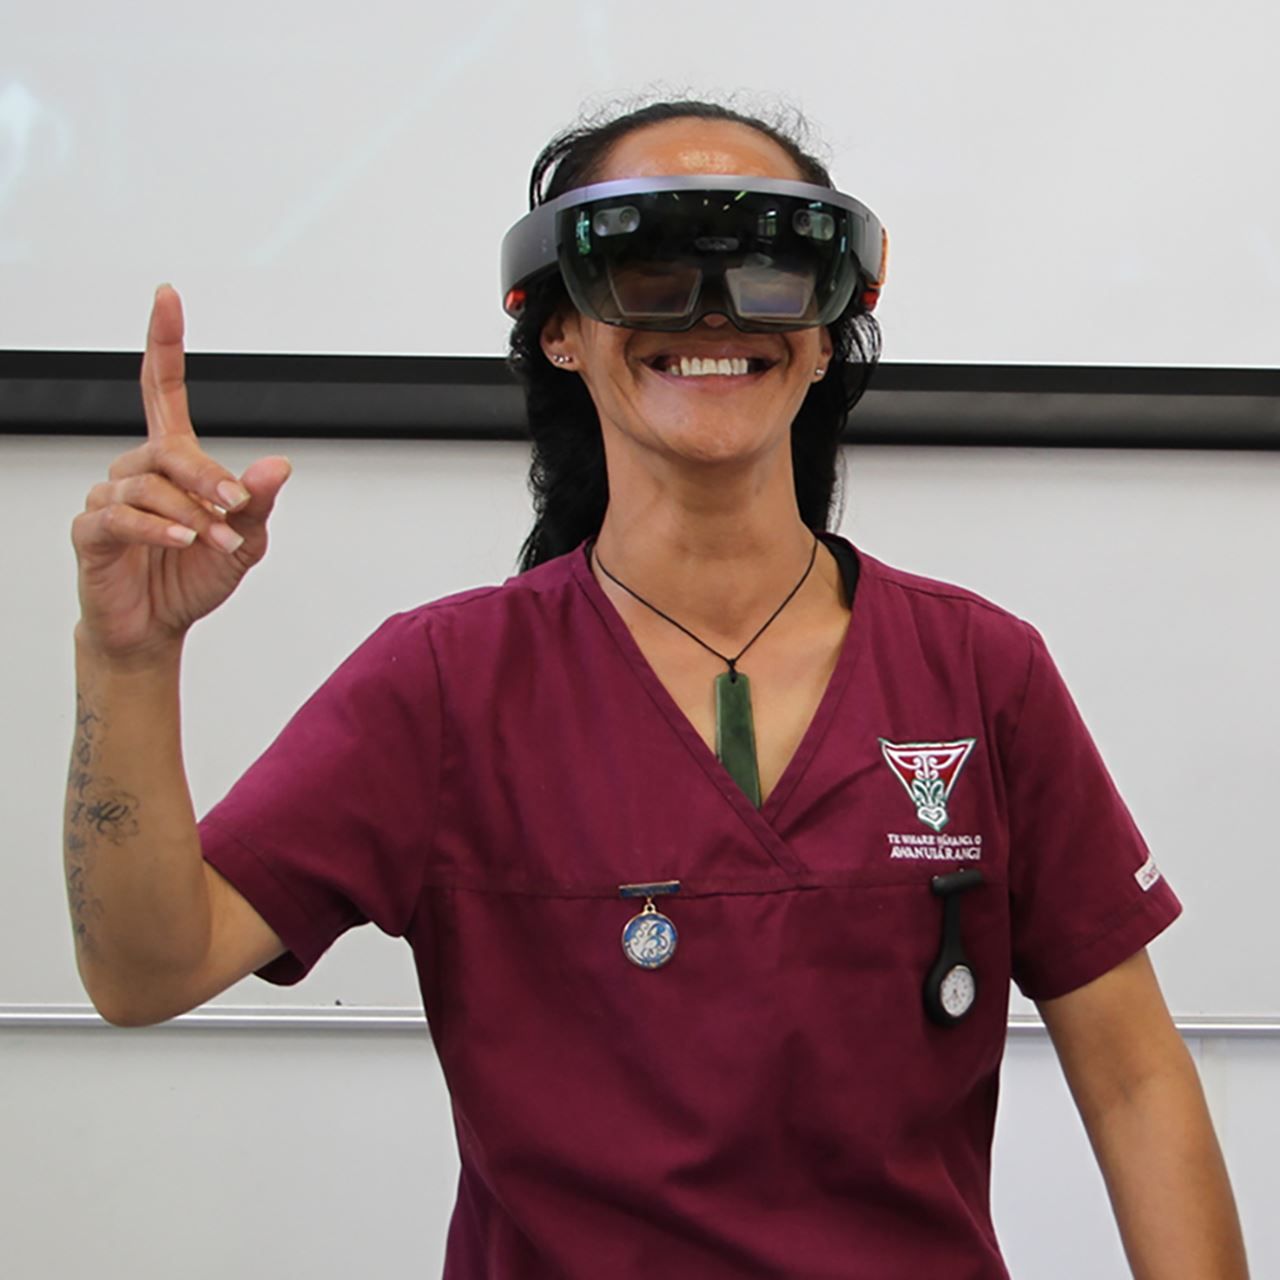 Nursing students training at indigenous tertiary institution Te Whare Wānanga o Awanuiārangi will use hologram patients to practise critical assessment and care, and virtual humans to study anatomy and physiology.